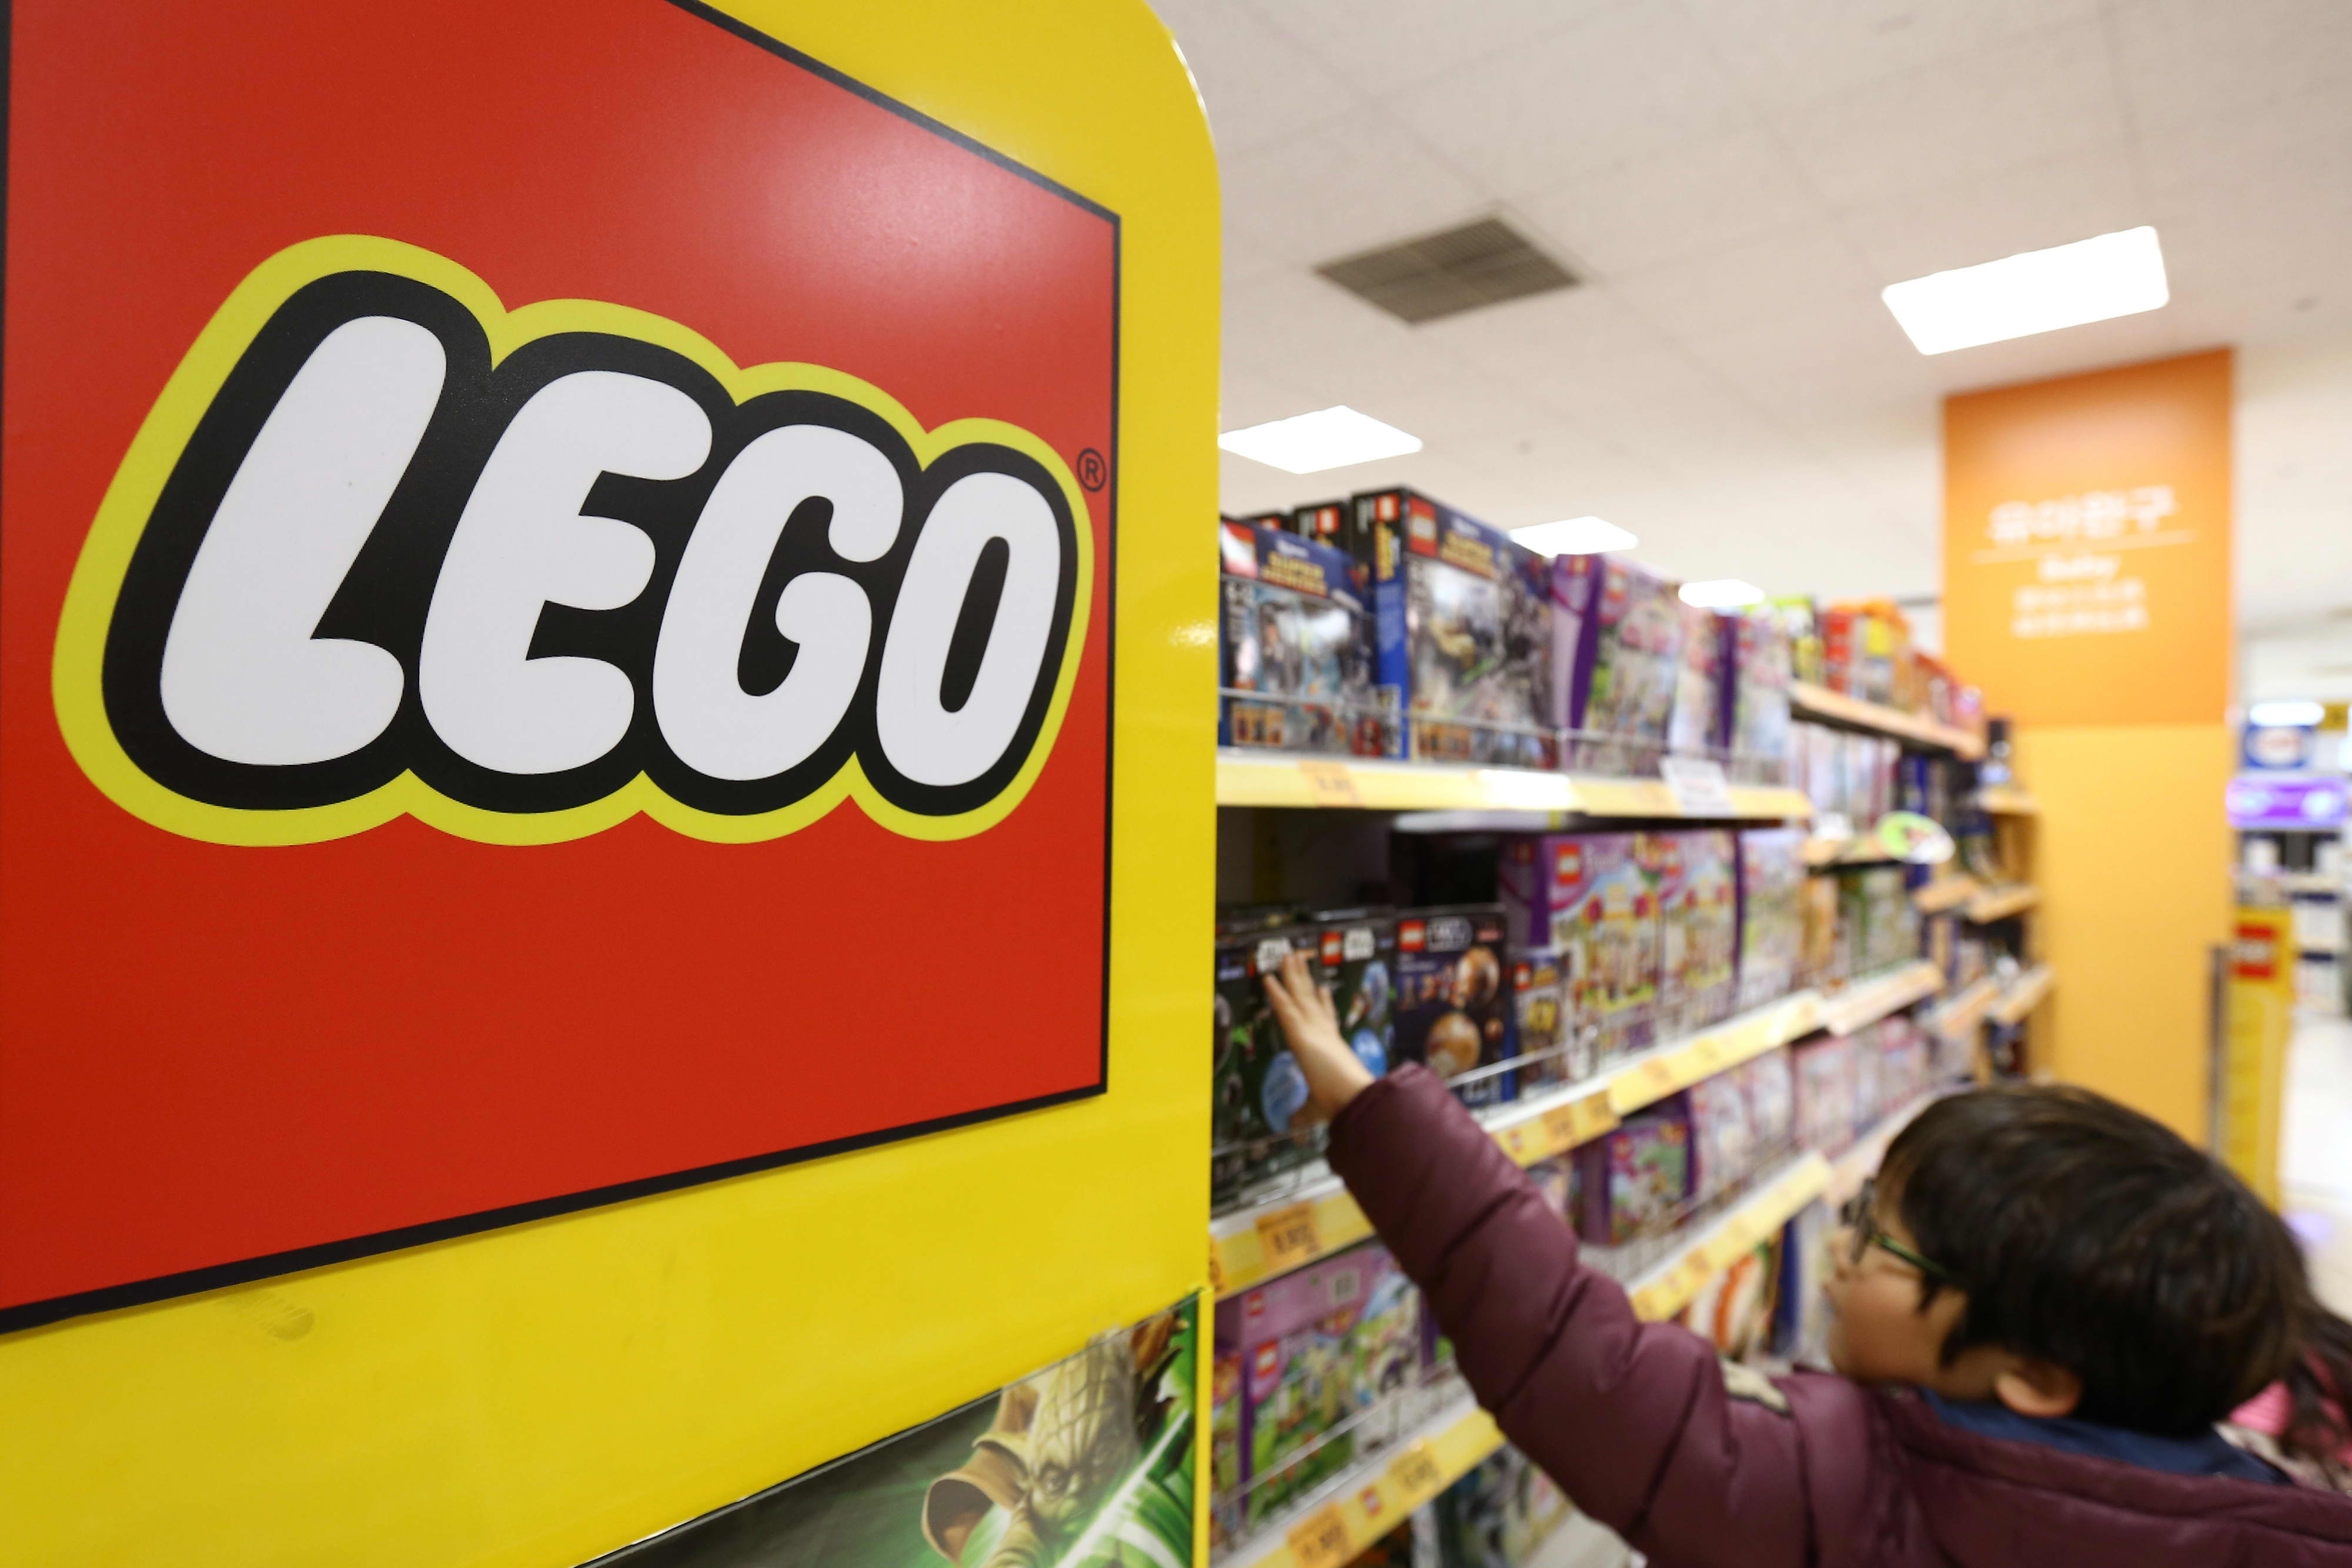 Lego sales soared in 2020, but don't just credit stay-at-home trends, it's gaining fans in China